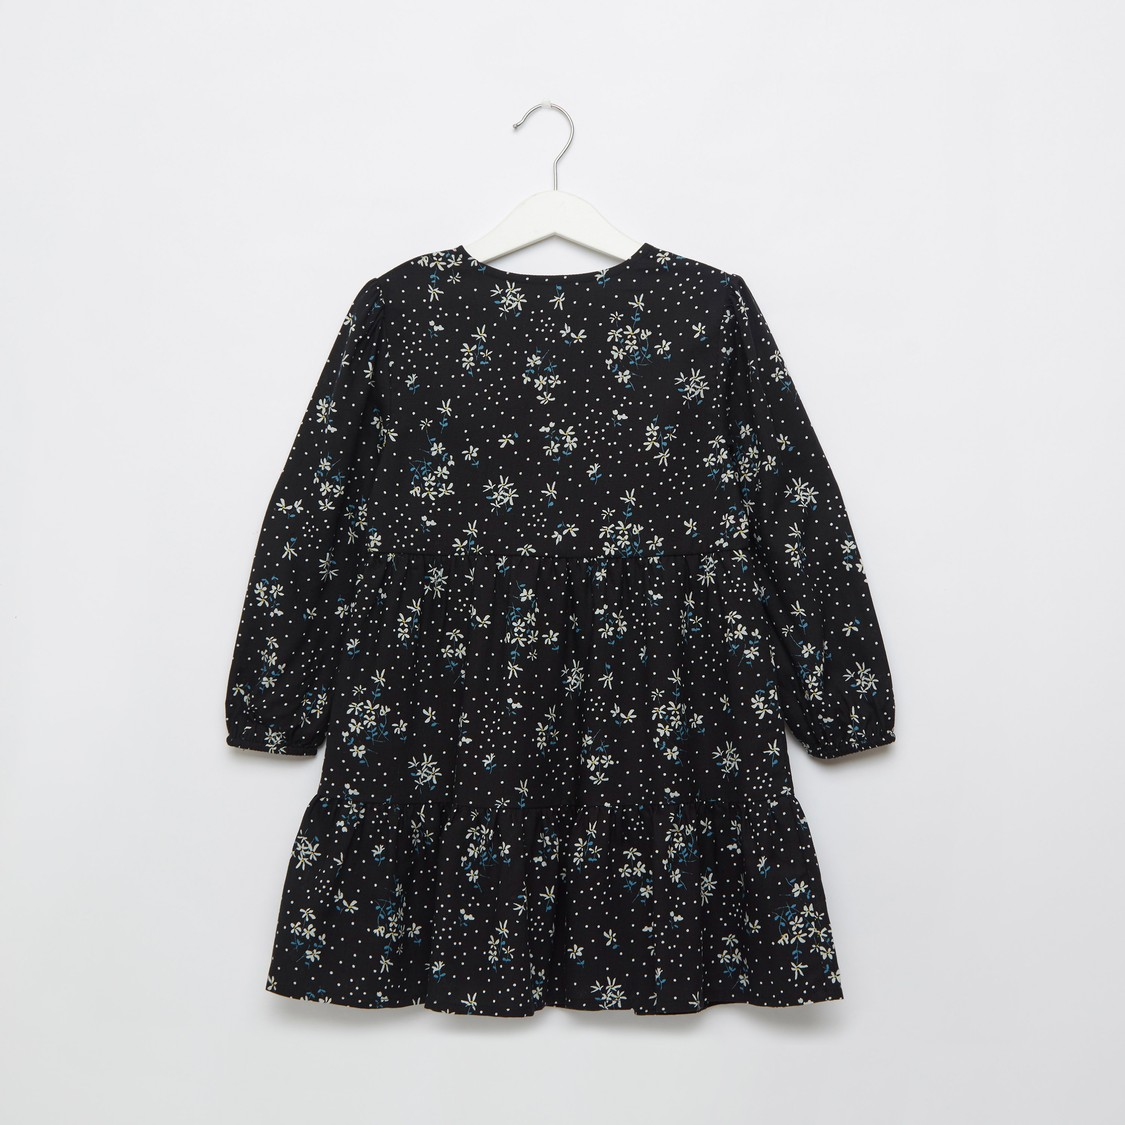 All-Over Floral Print Tiered Dress with Long Sleeves